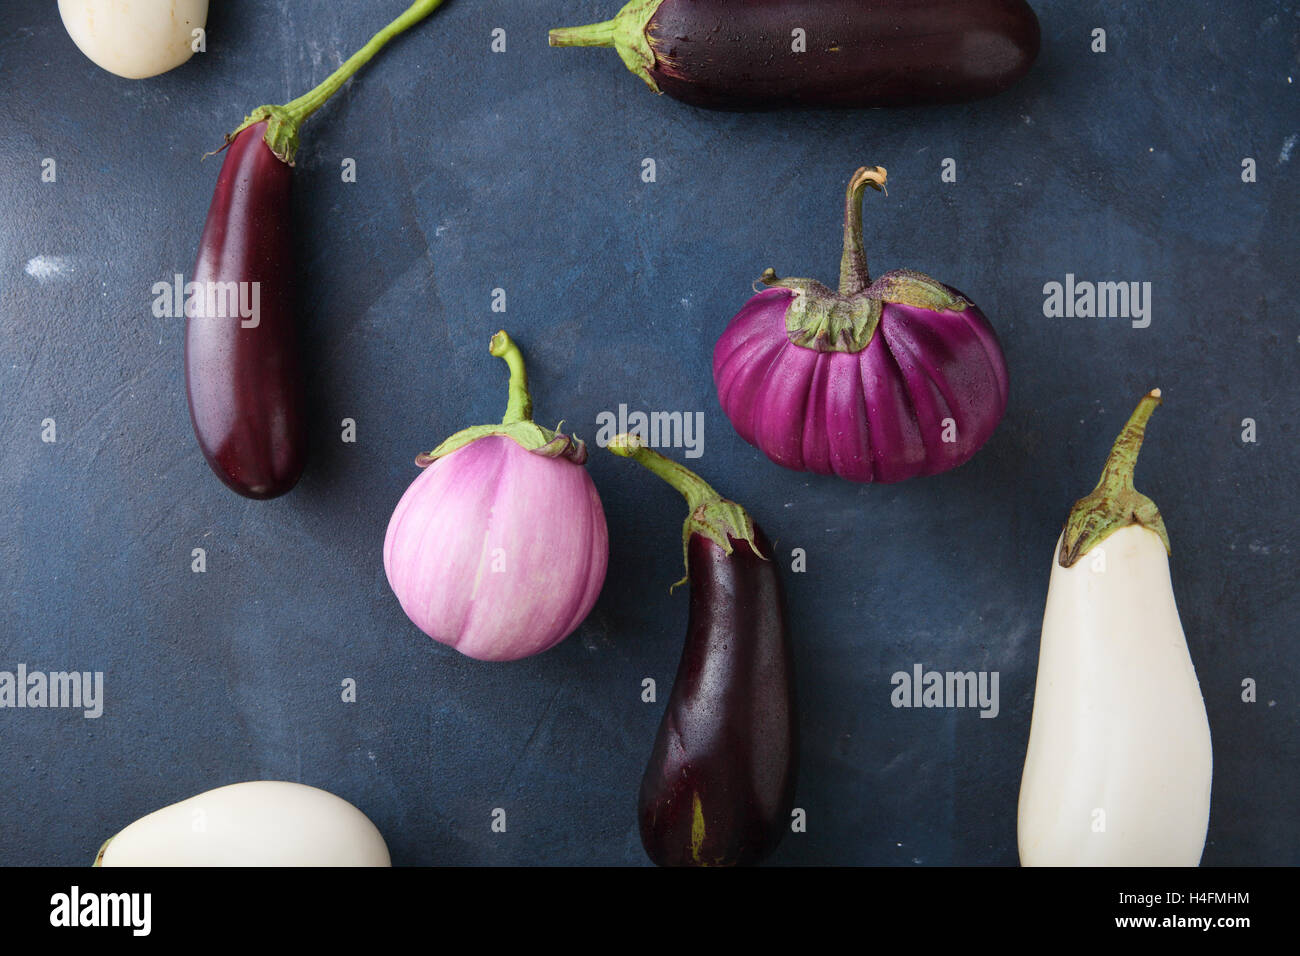 Variety fresh eggplants on slate, food background Stock Photo